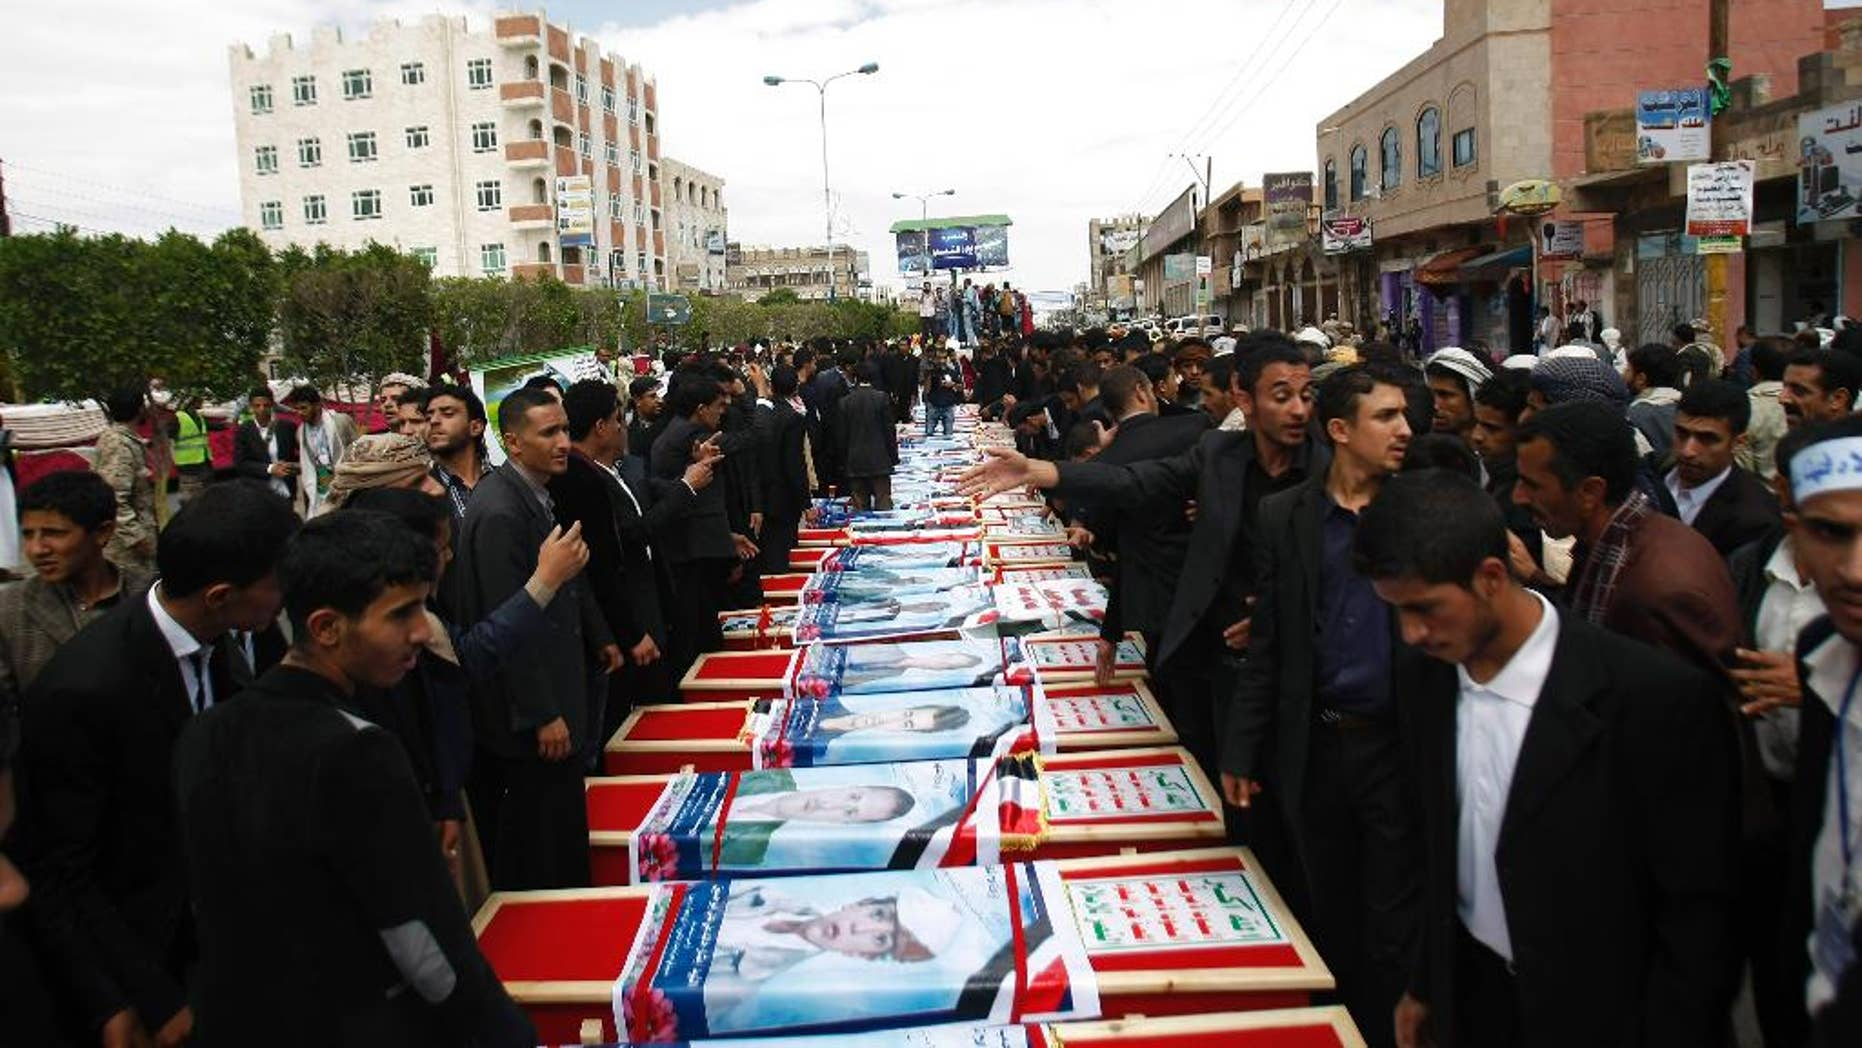 Mourners stand near the coffins of a men who were killed last Thursday by a suicide bomber in central Sanaa, Yemen, Tuesday, Oct. 14, 2014.  Two suicide bombings in Yemen killed nearly 70 people last Thursday, with one targeting an anti-government rally by followers of the Houthi Shiite group,  who control Sanaa.  (AP Photo/Hani Mohammed)